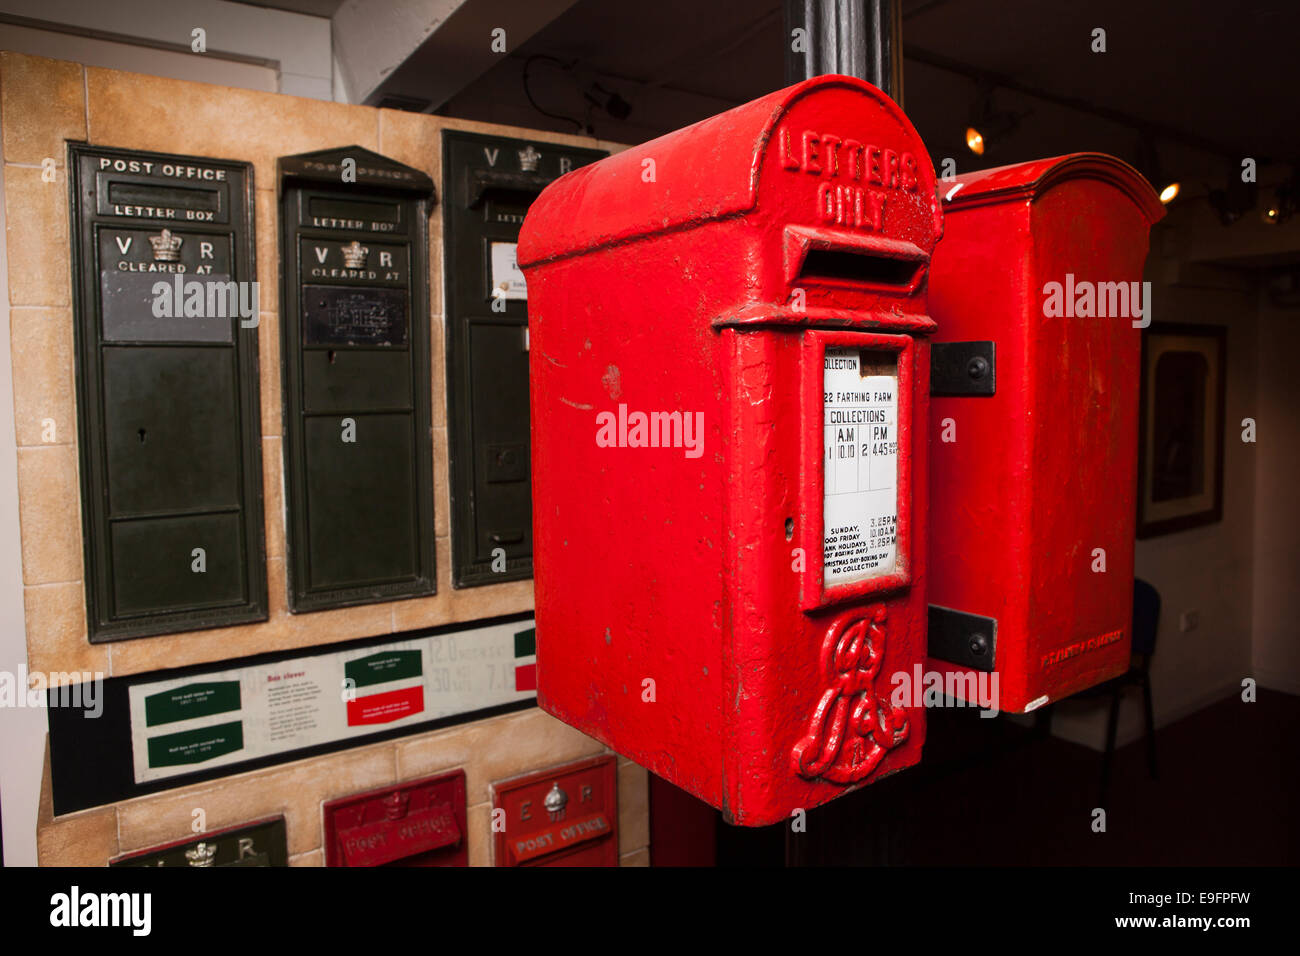 UK, England, Wiltshire, Bath, Postal Museum, letter boxes on display - Stock Image